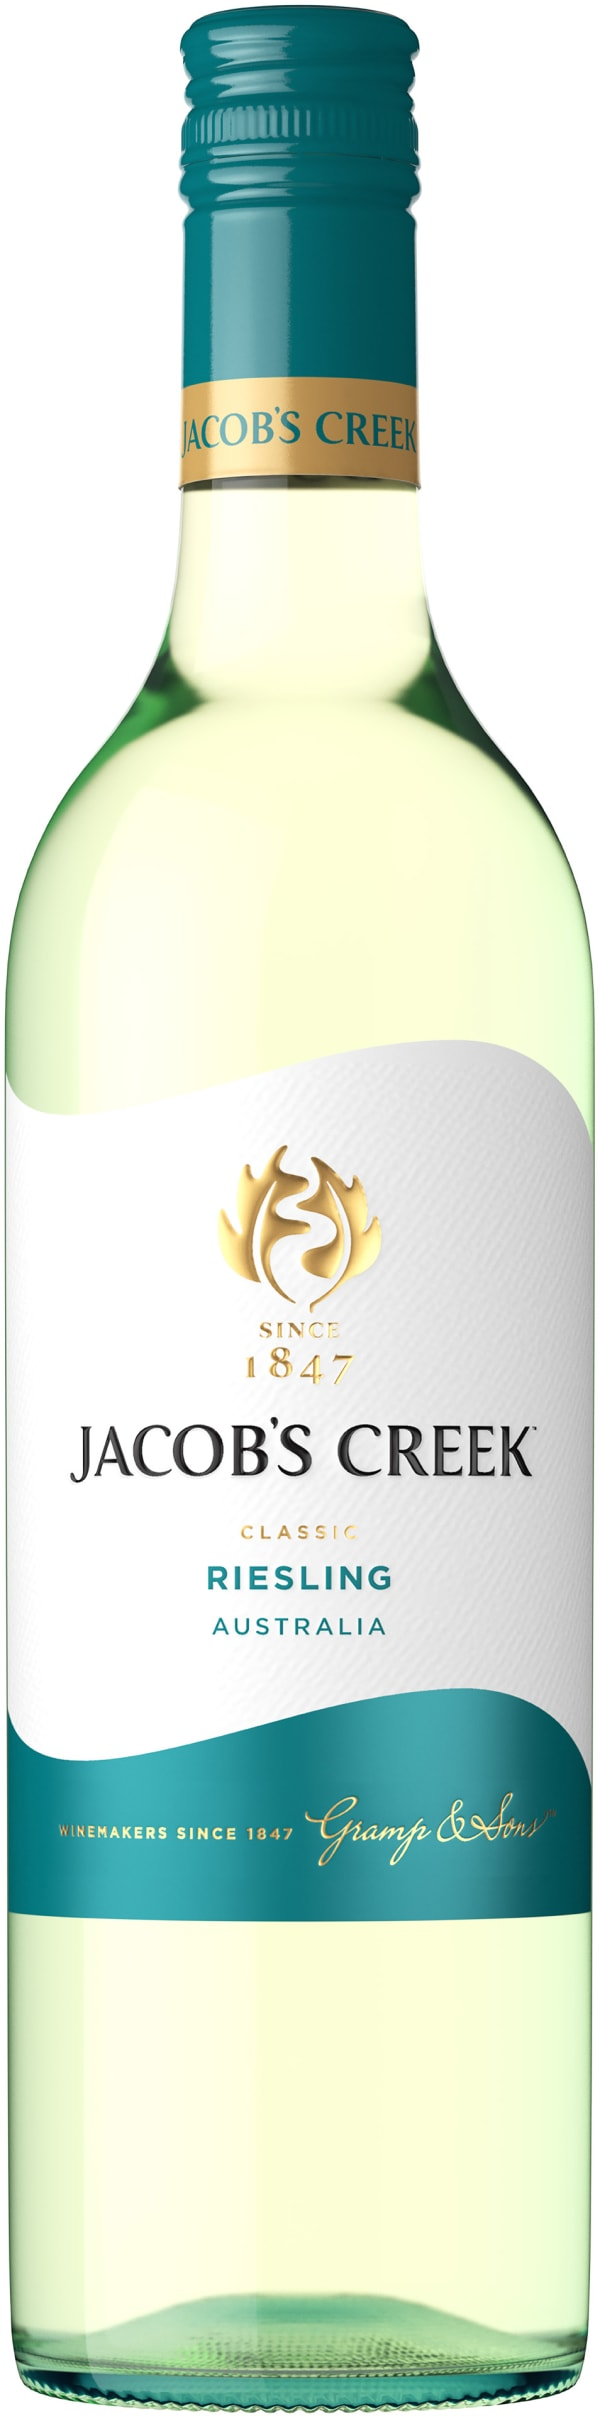 Jacob's Creek Riesling 2019